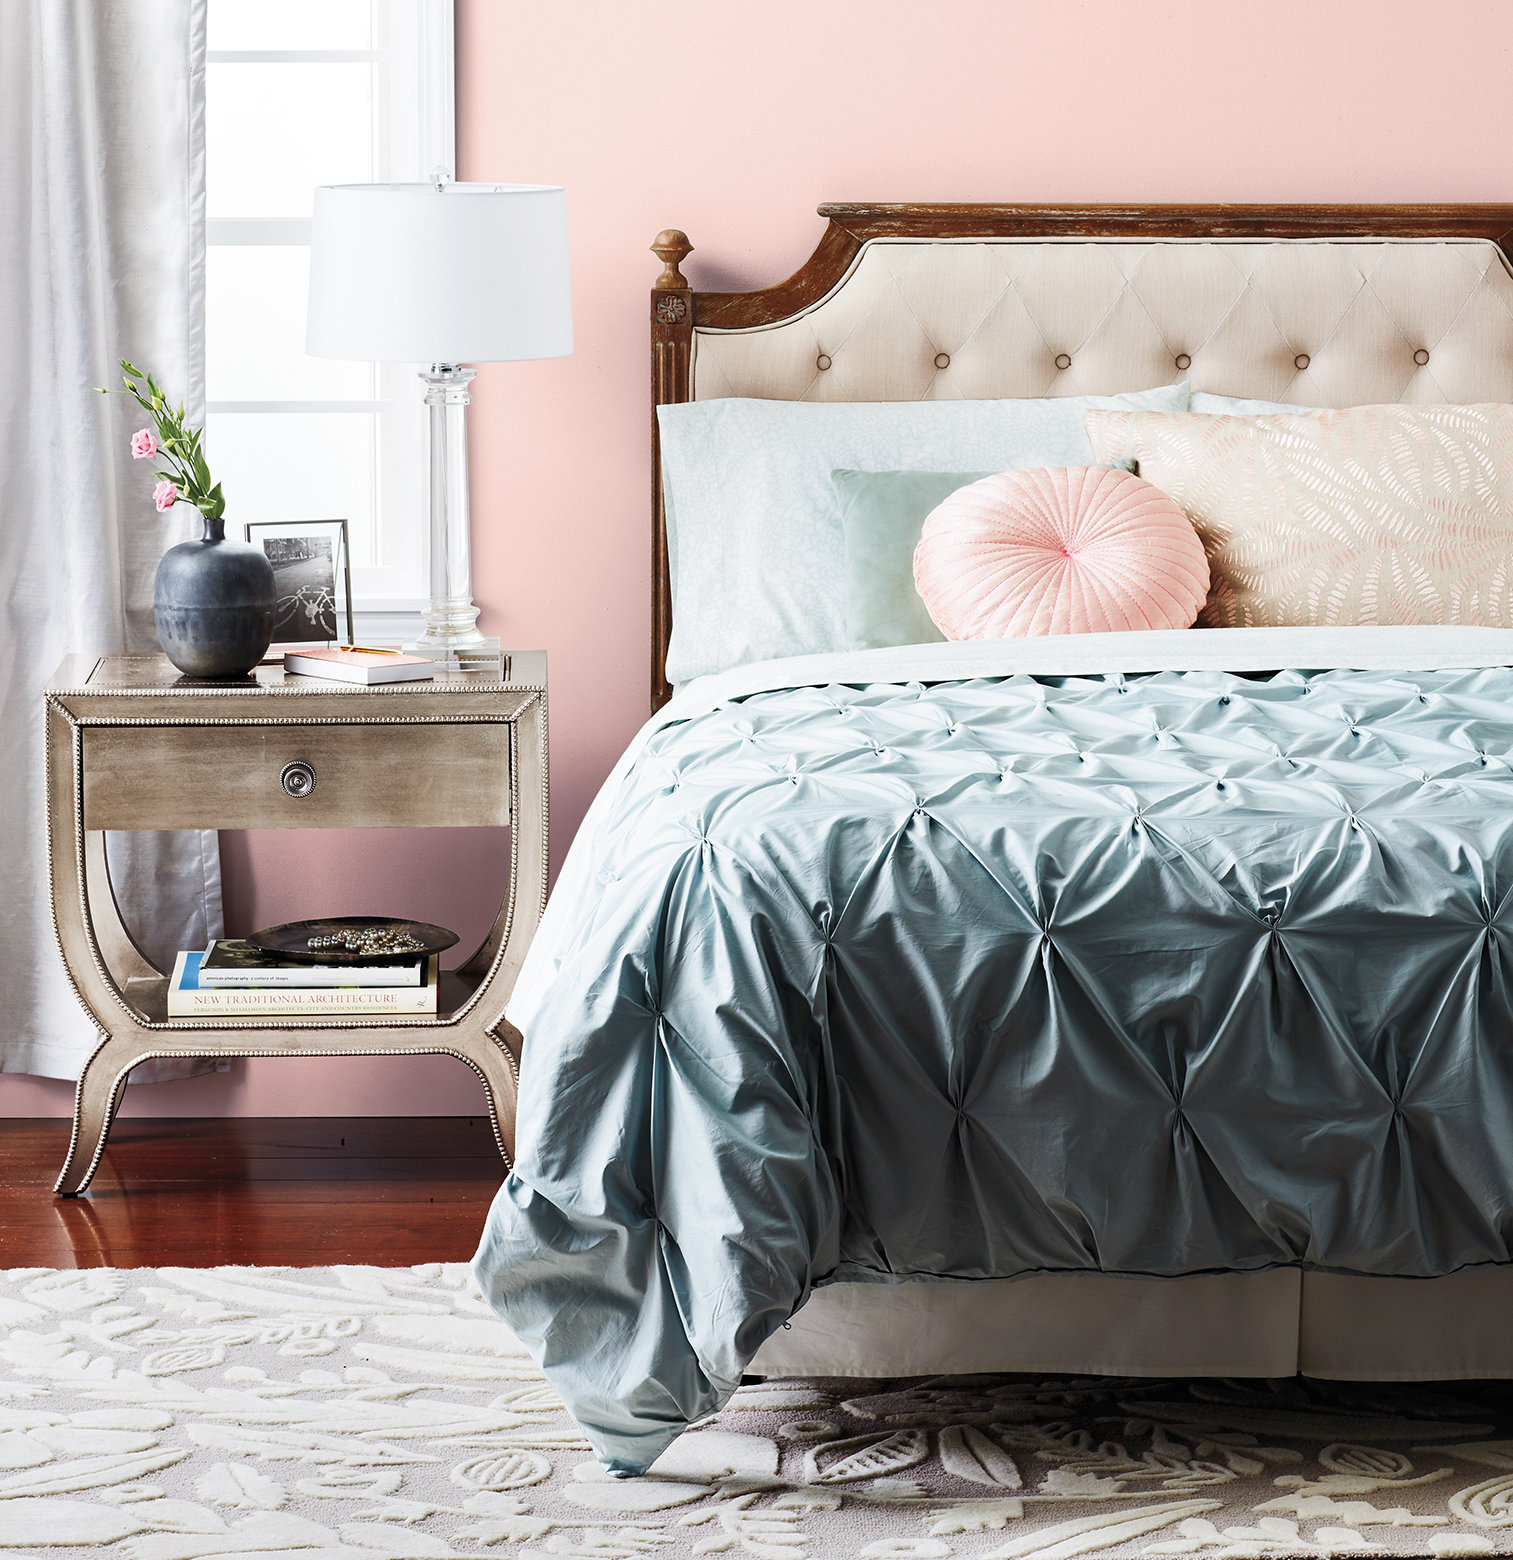 Bedroom with romantic elements. pinks, blues